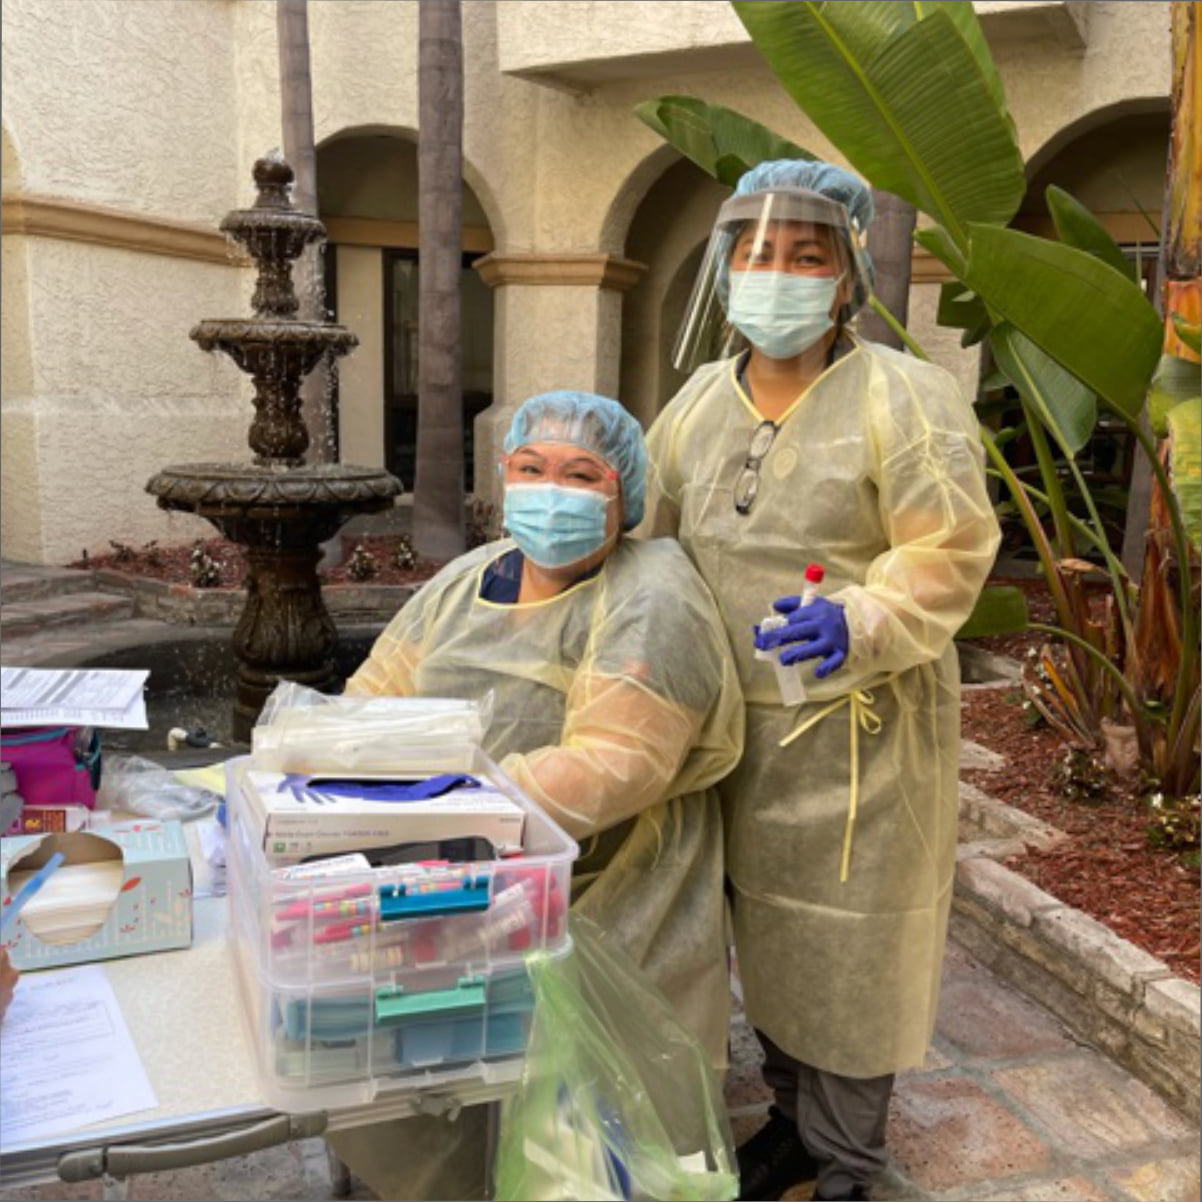 Two women in protective suit